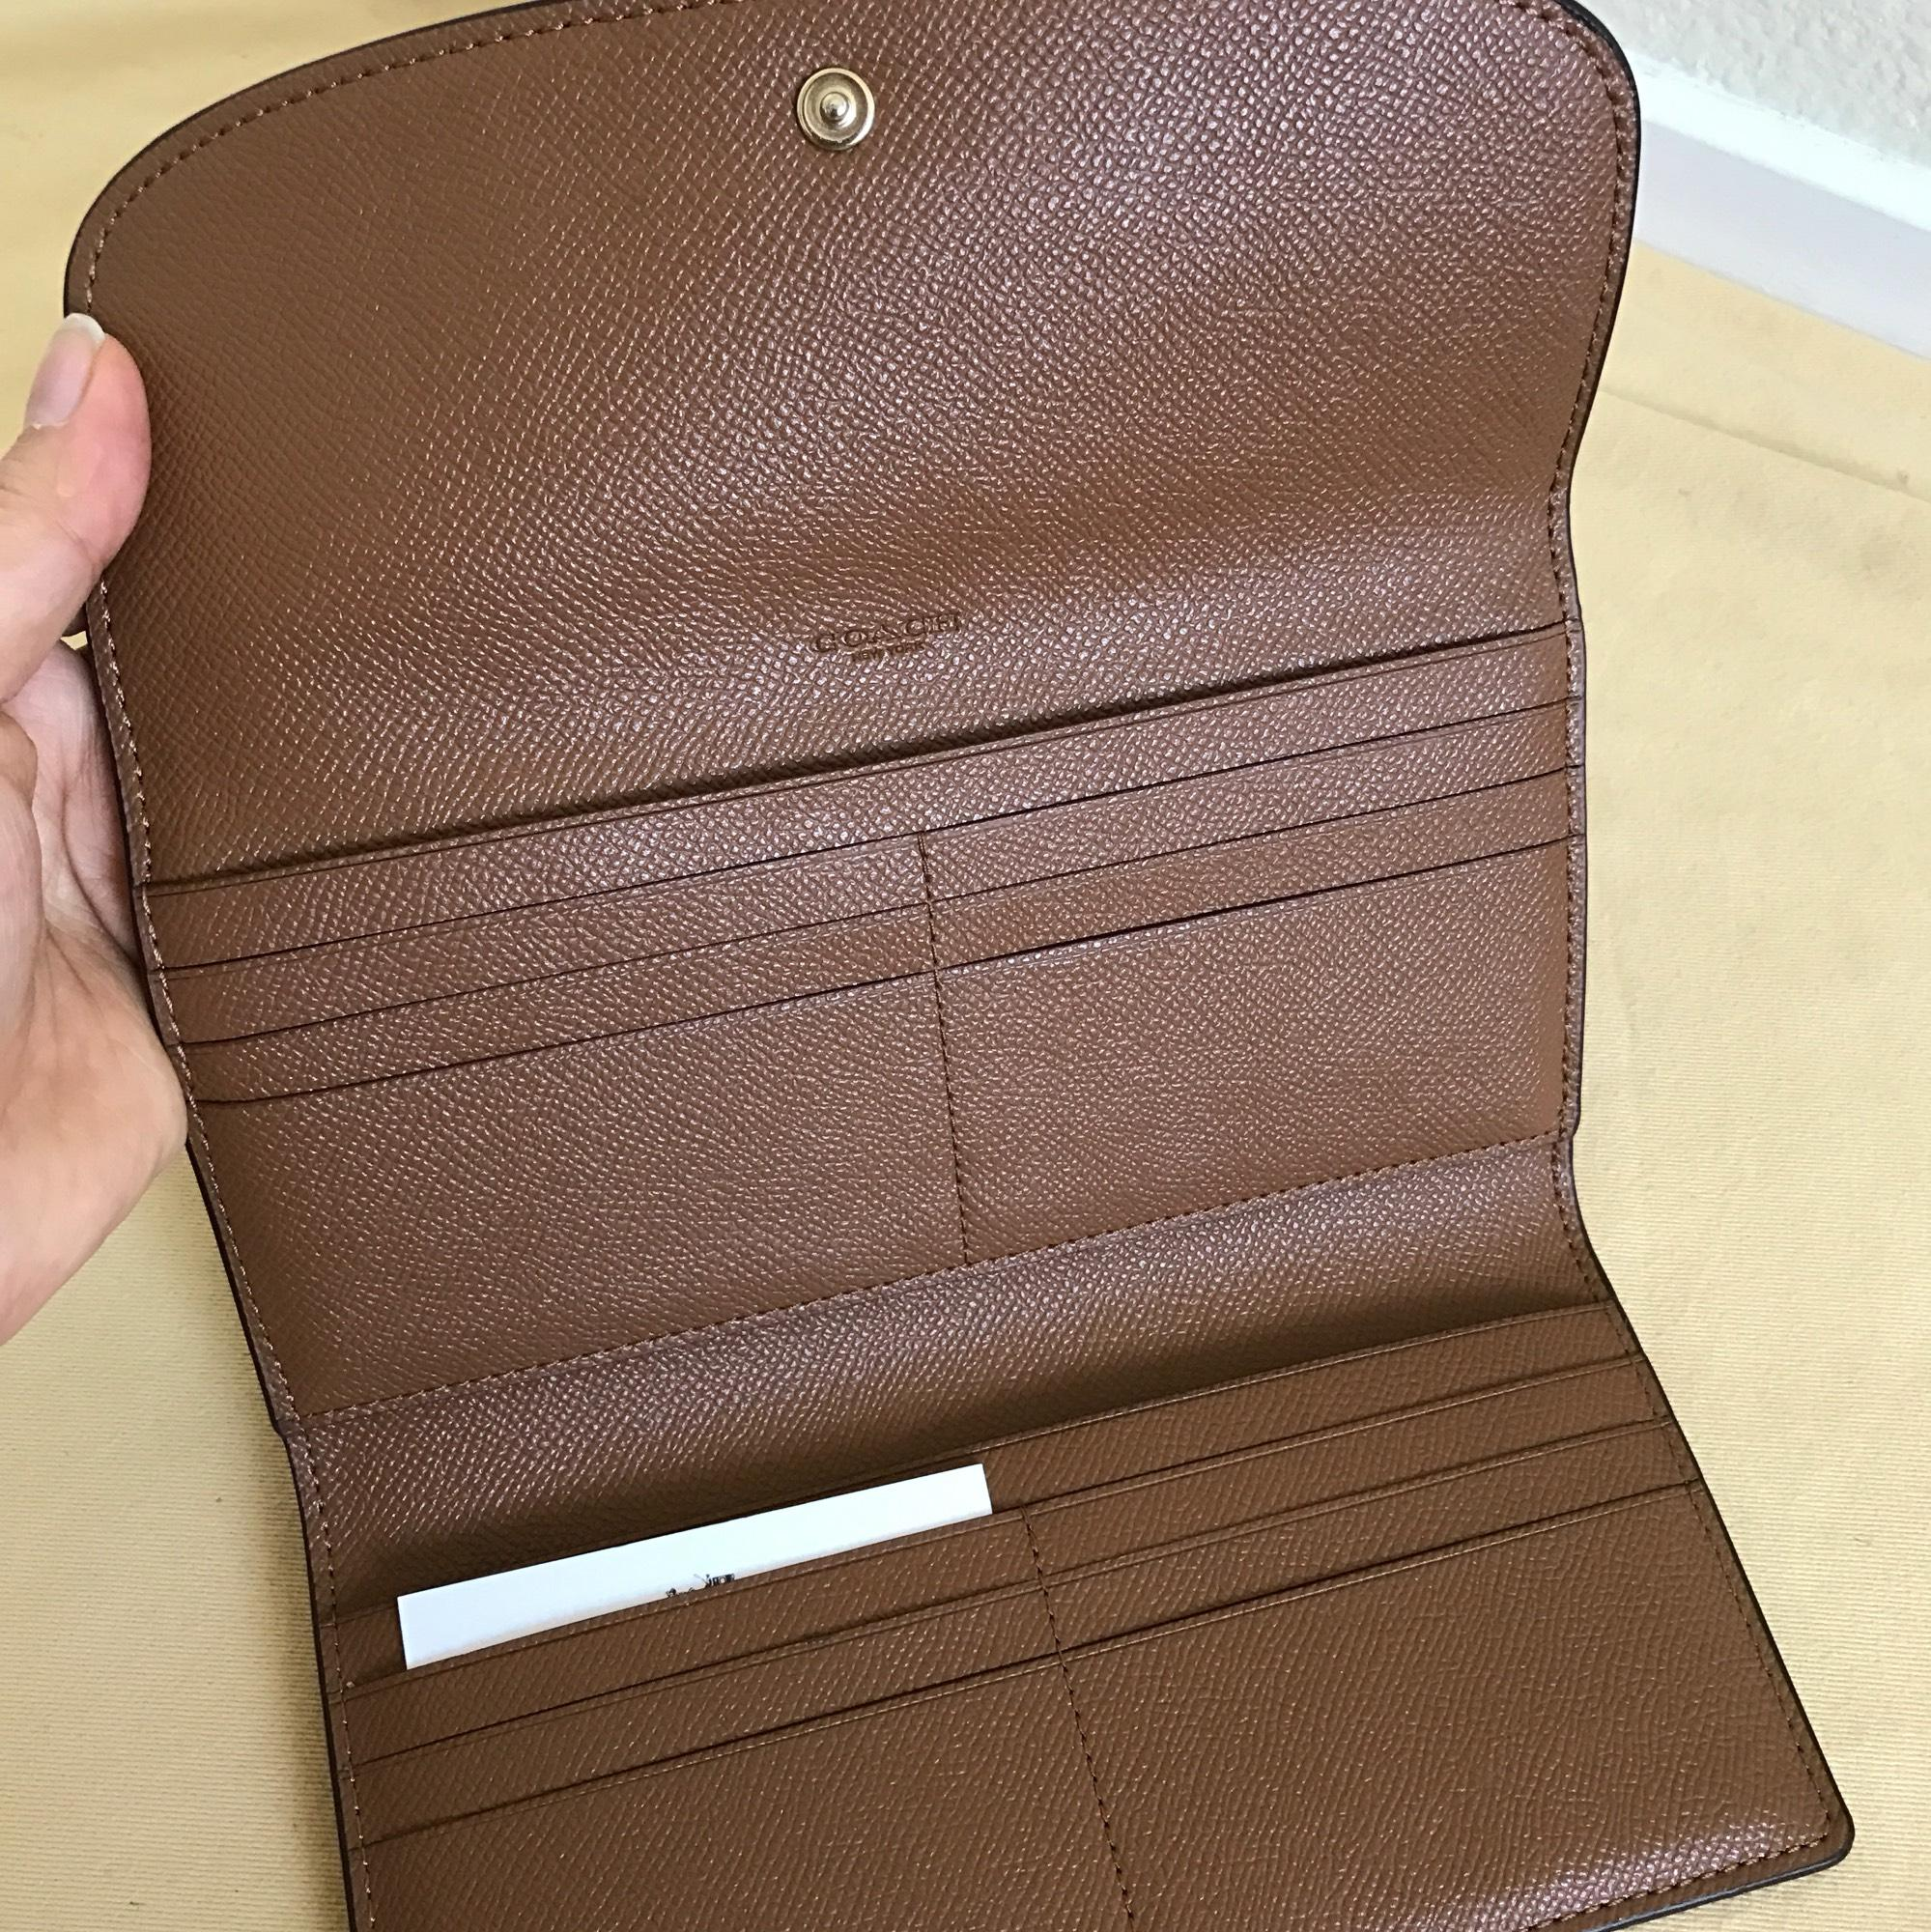 4655aa3e69be ... usa coach dark saddle checkbook in pebble leather f56488 wallet tradesy  97edc 3cdb7 best price coach signature ...